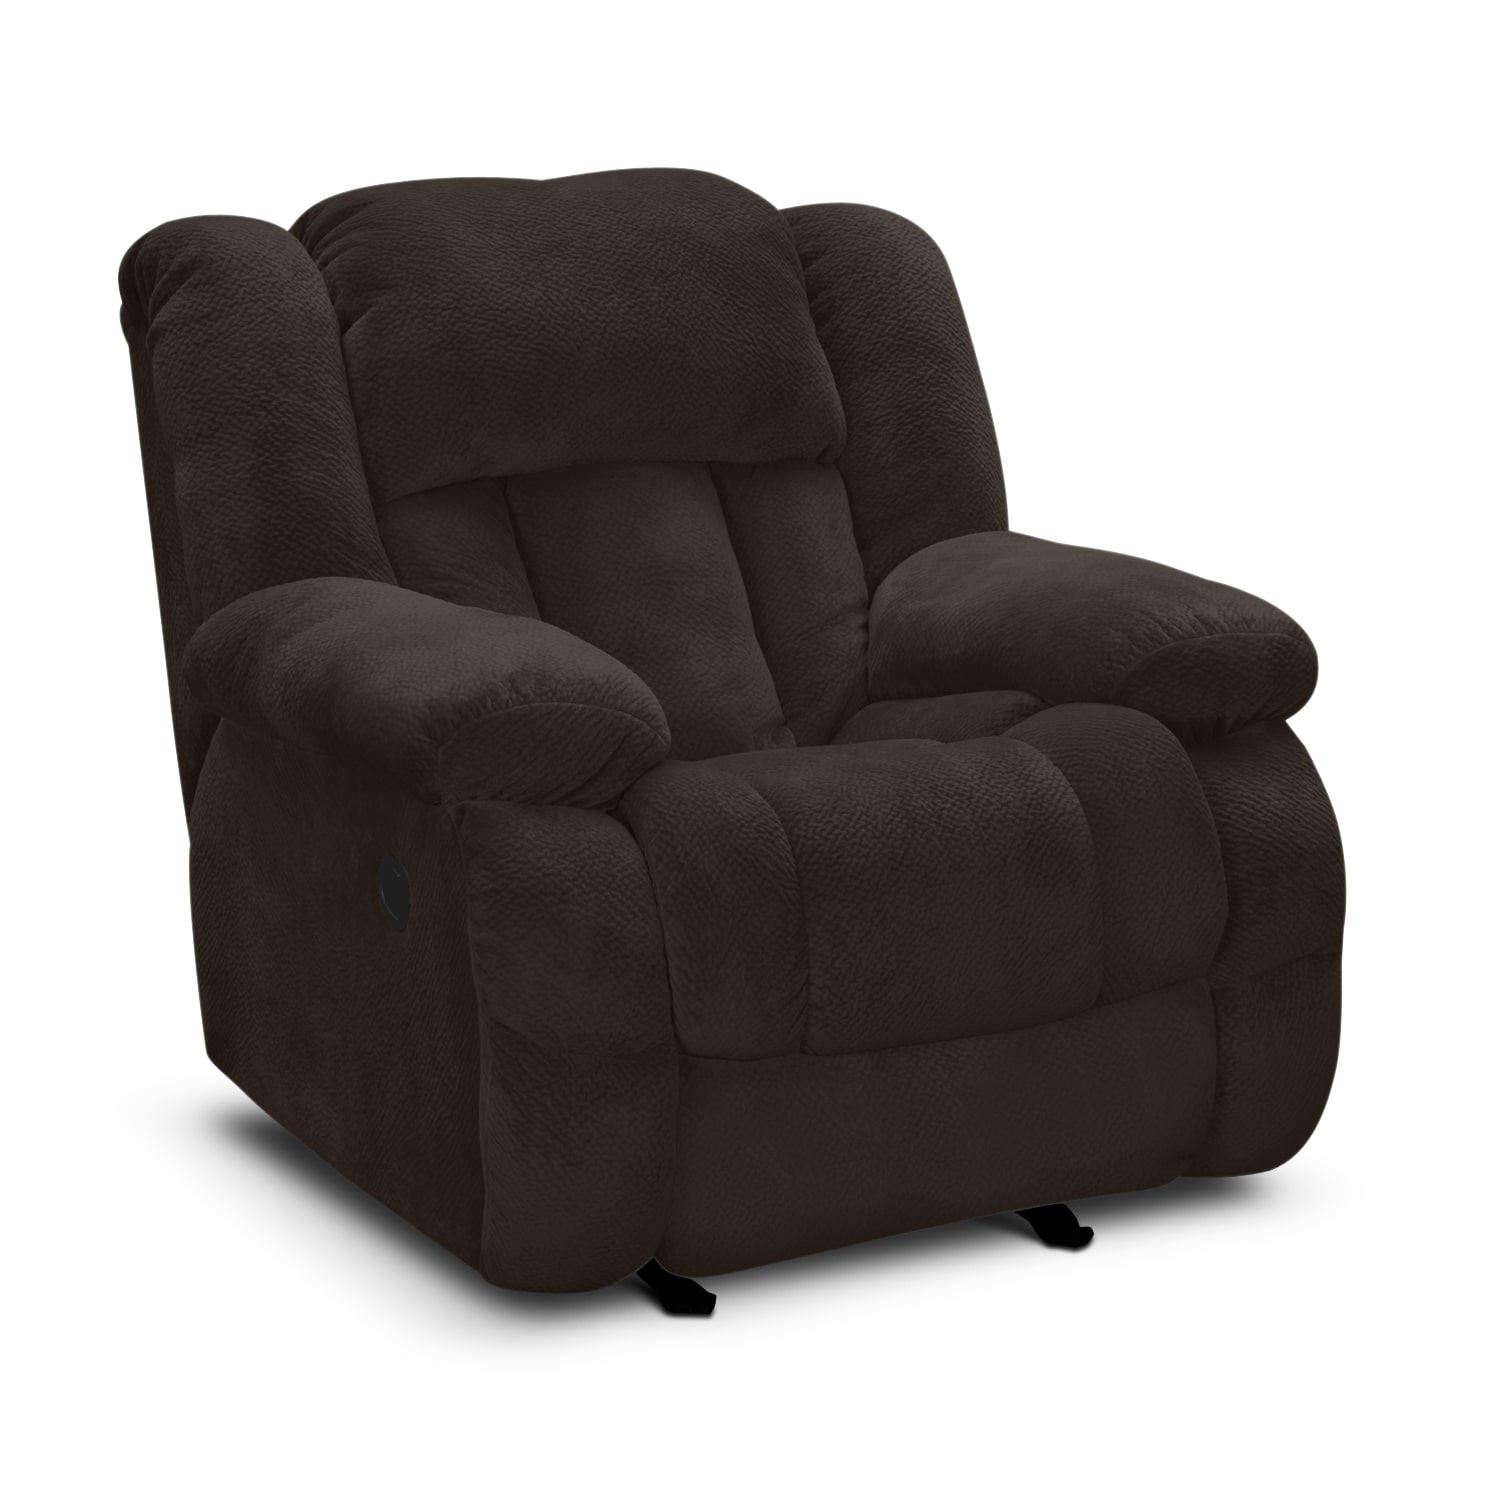 Living Room Furniture - Park City III Glider Recliner